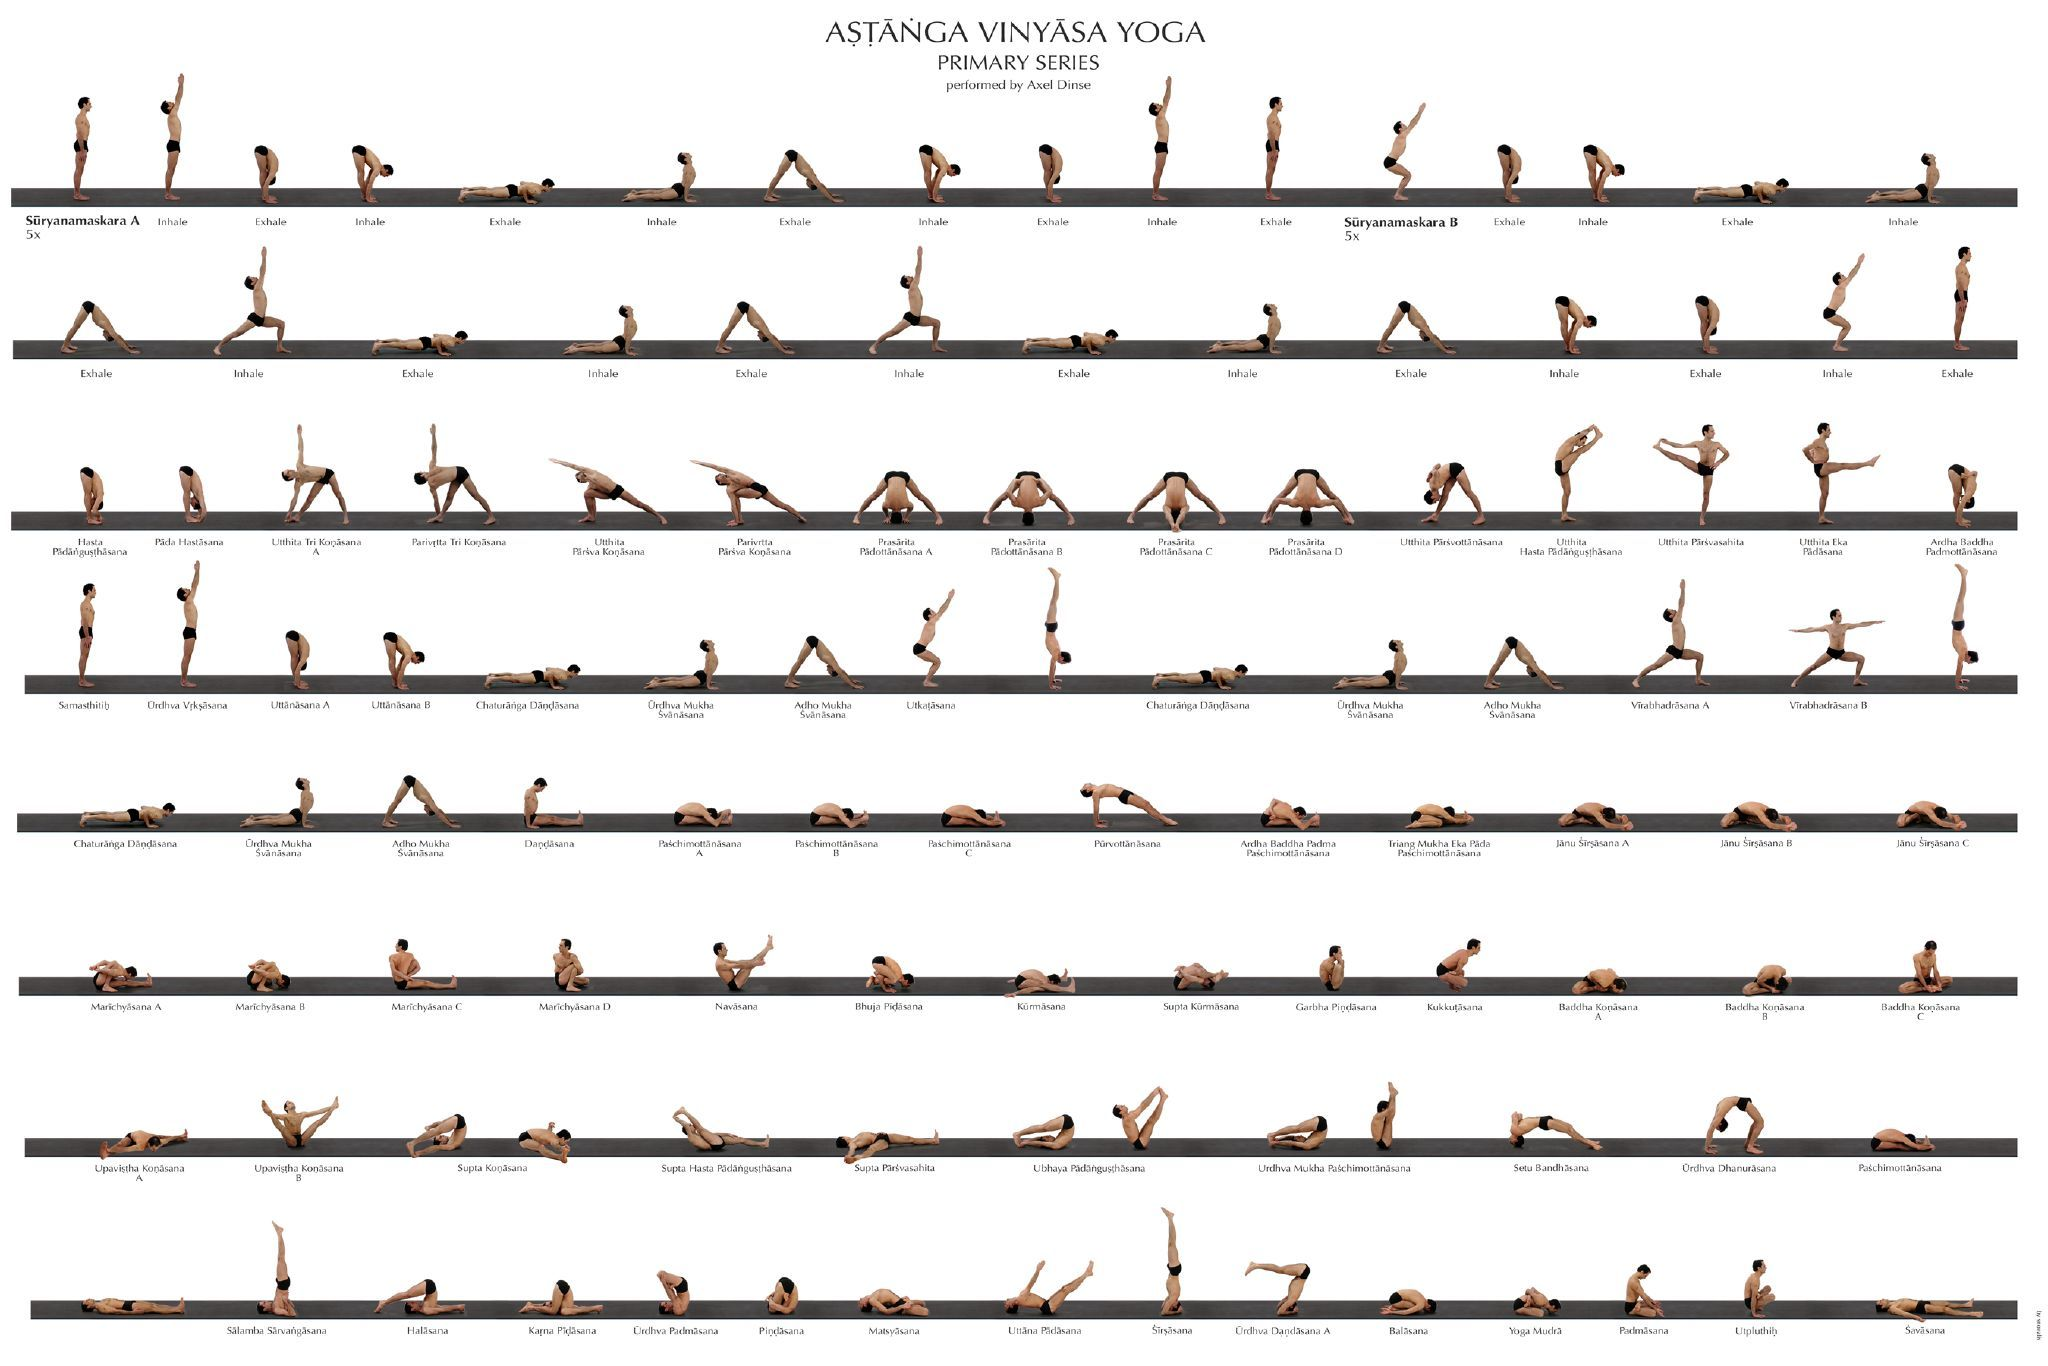 Ashtanga Yoga Poster | Health, Yoga posters and Yoga